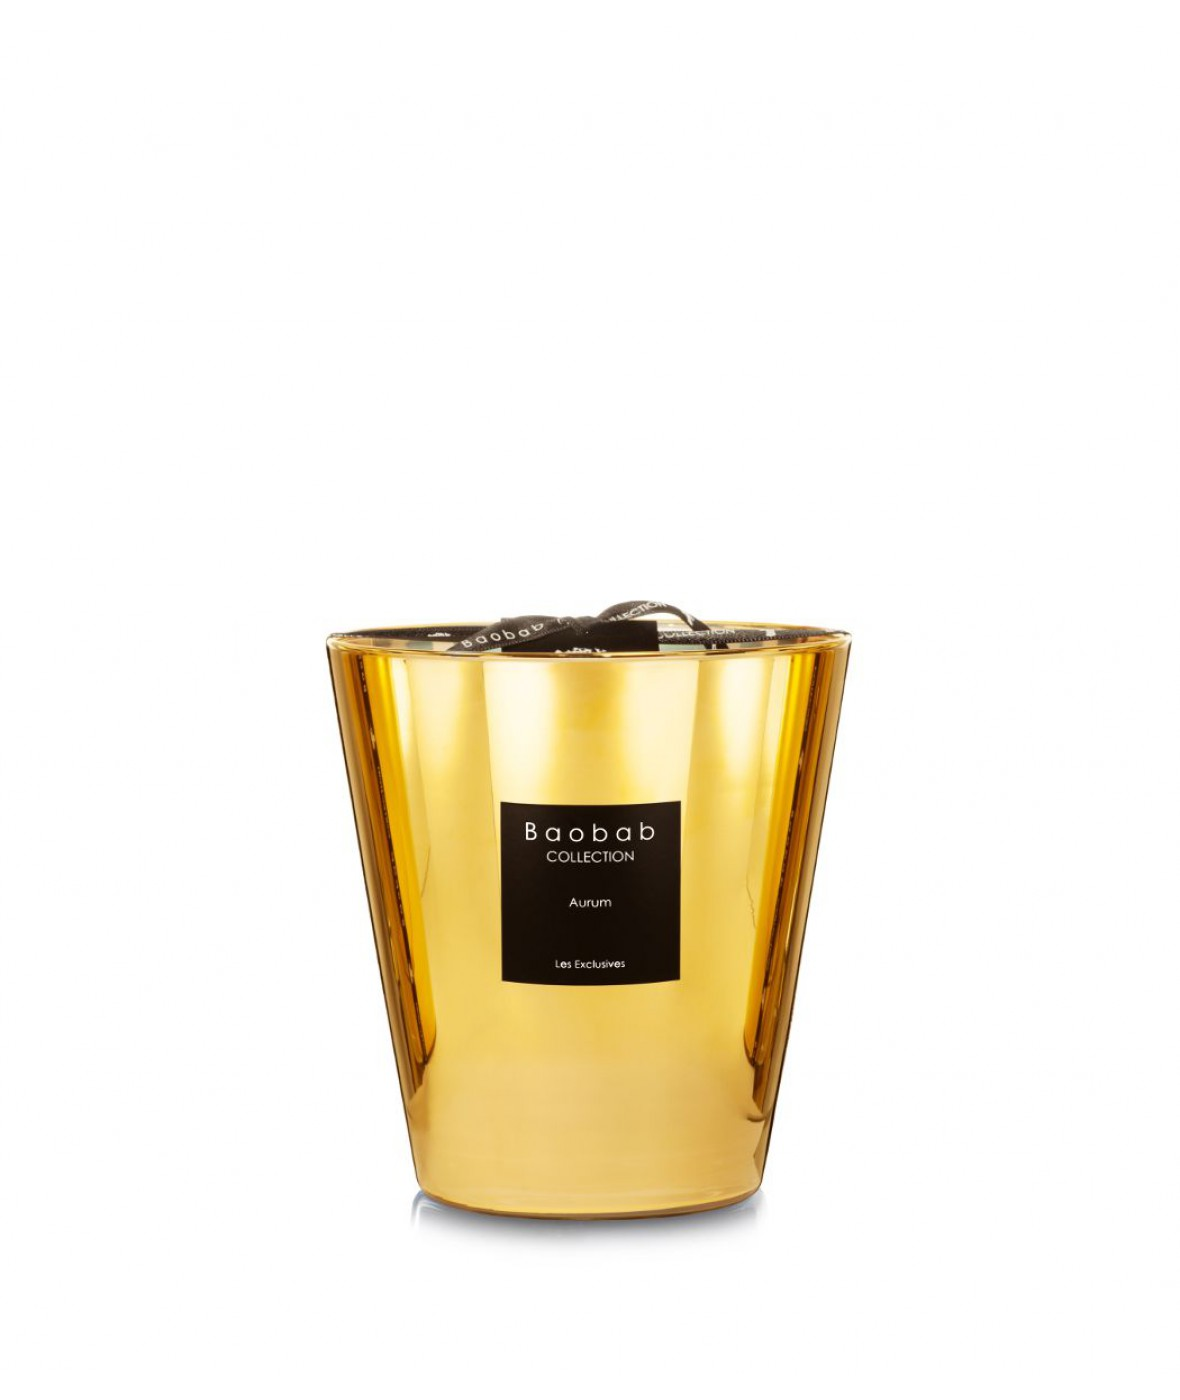 Baobap Scented Candle Aurum (Large)